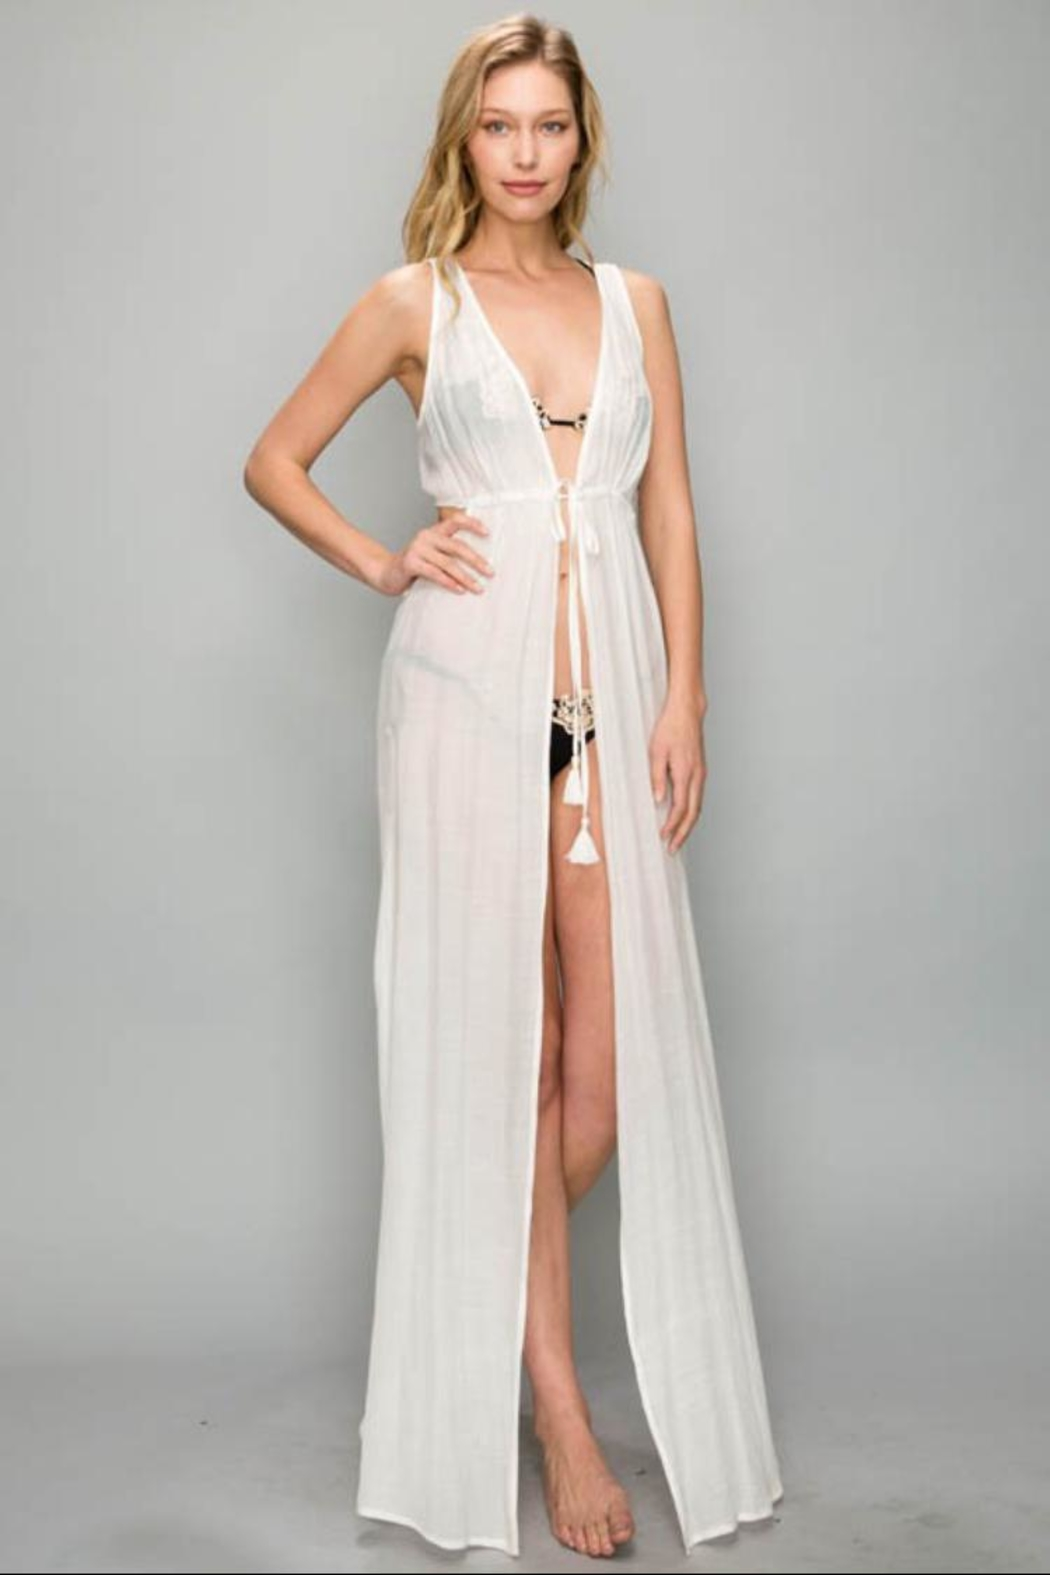 AAKAA Lace Cover-Up Dress - Main Image